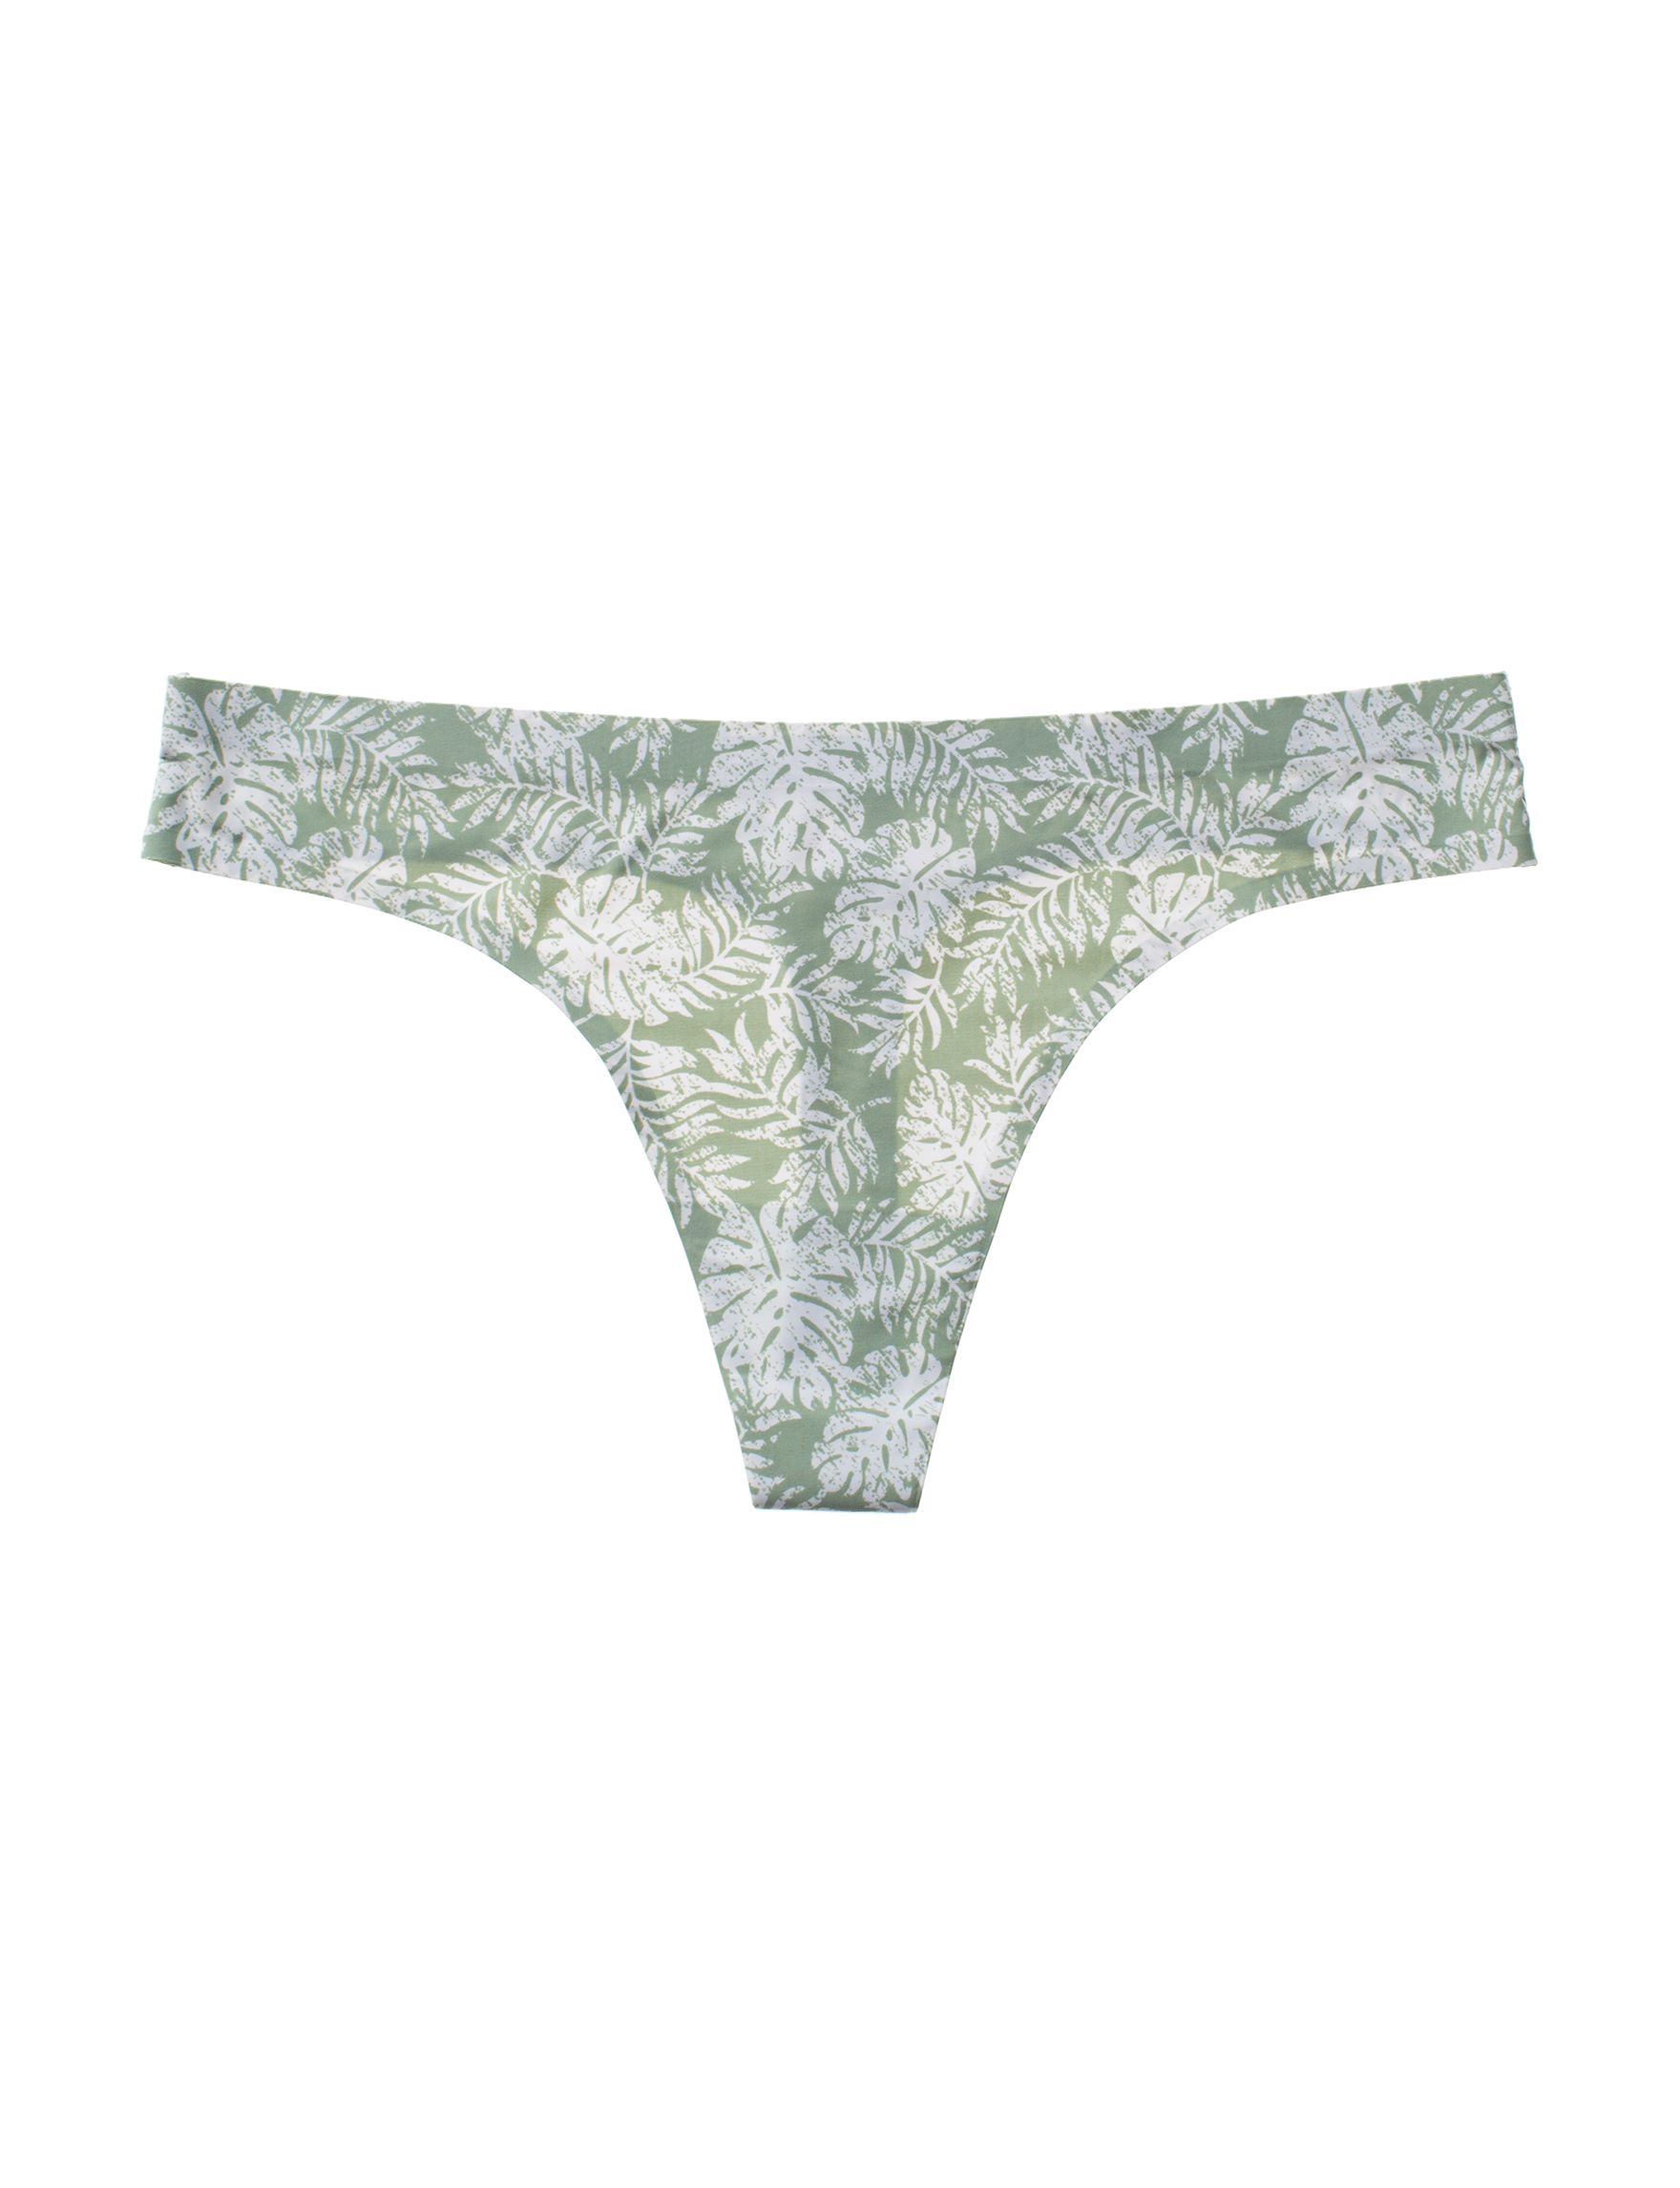 Sophie B Green Floral Panties Thong